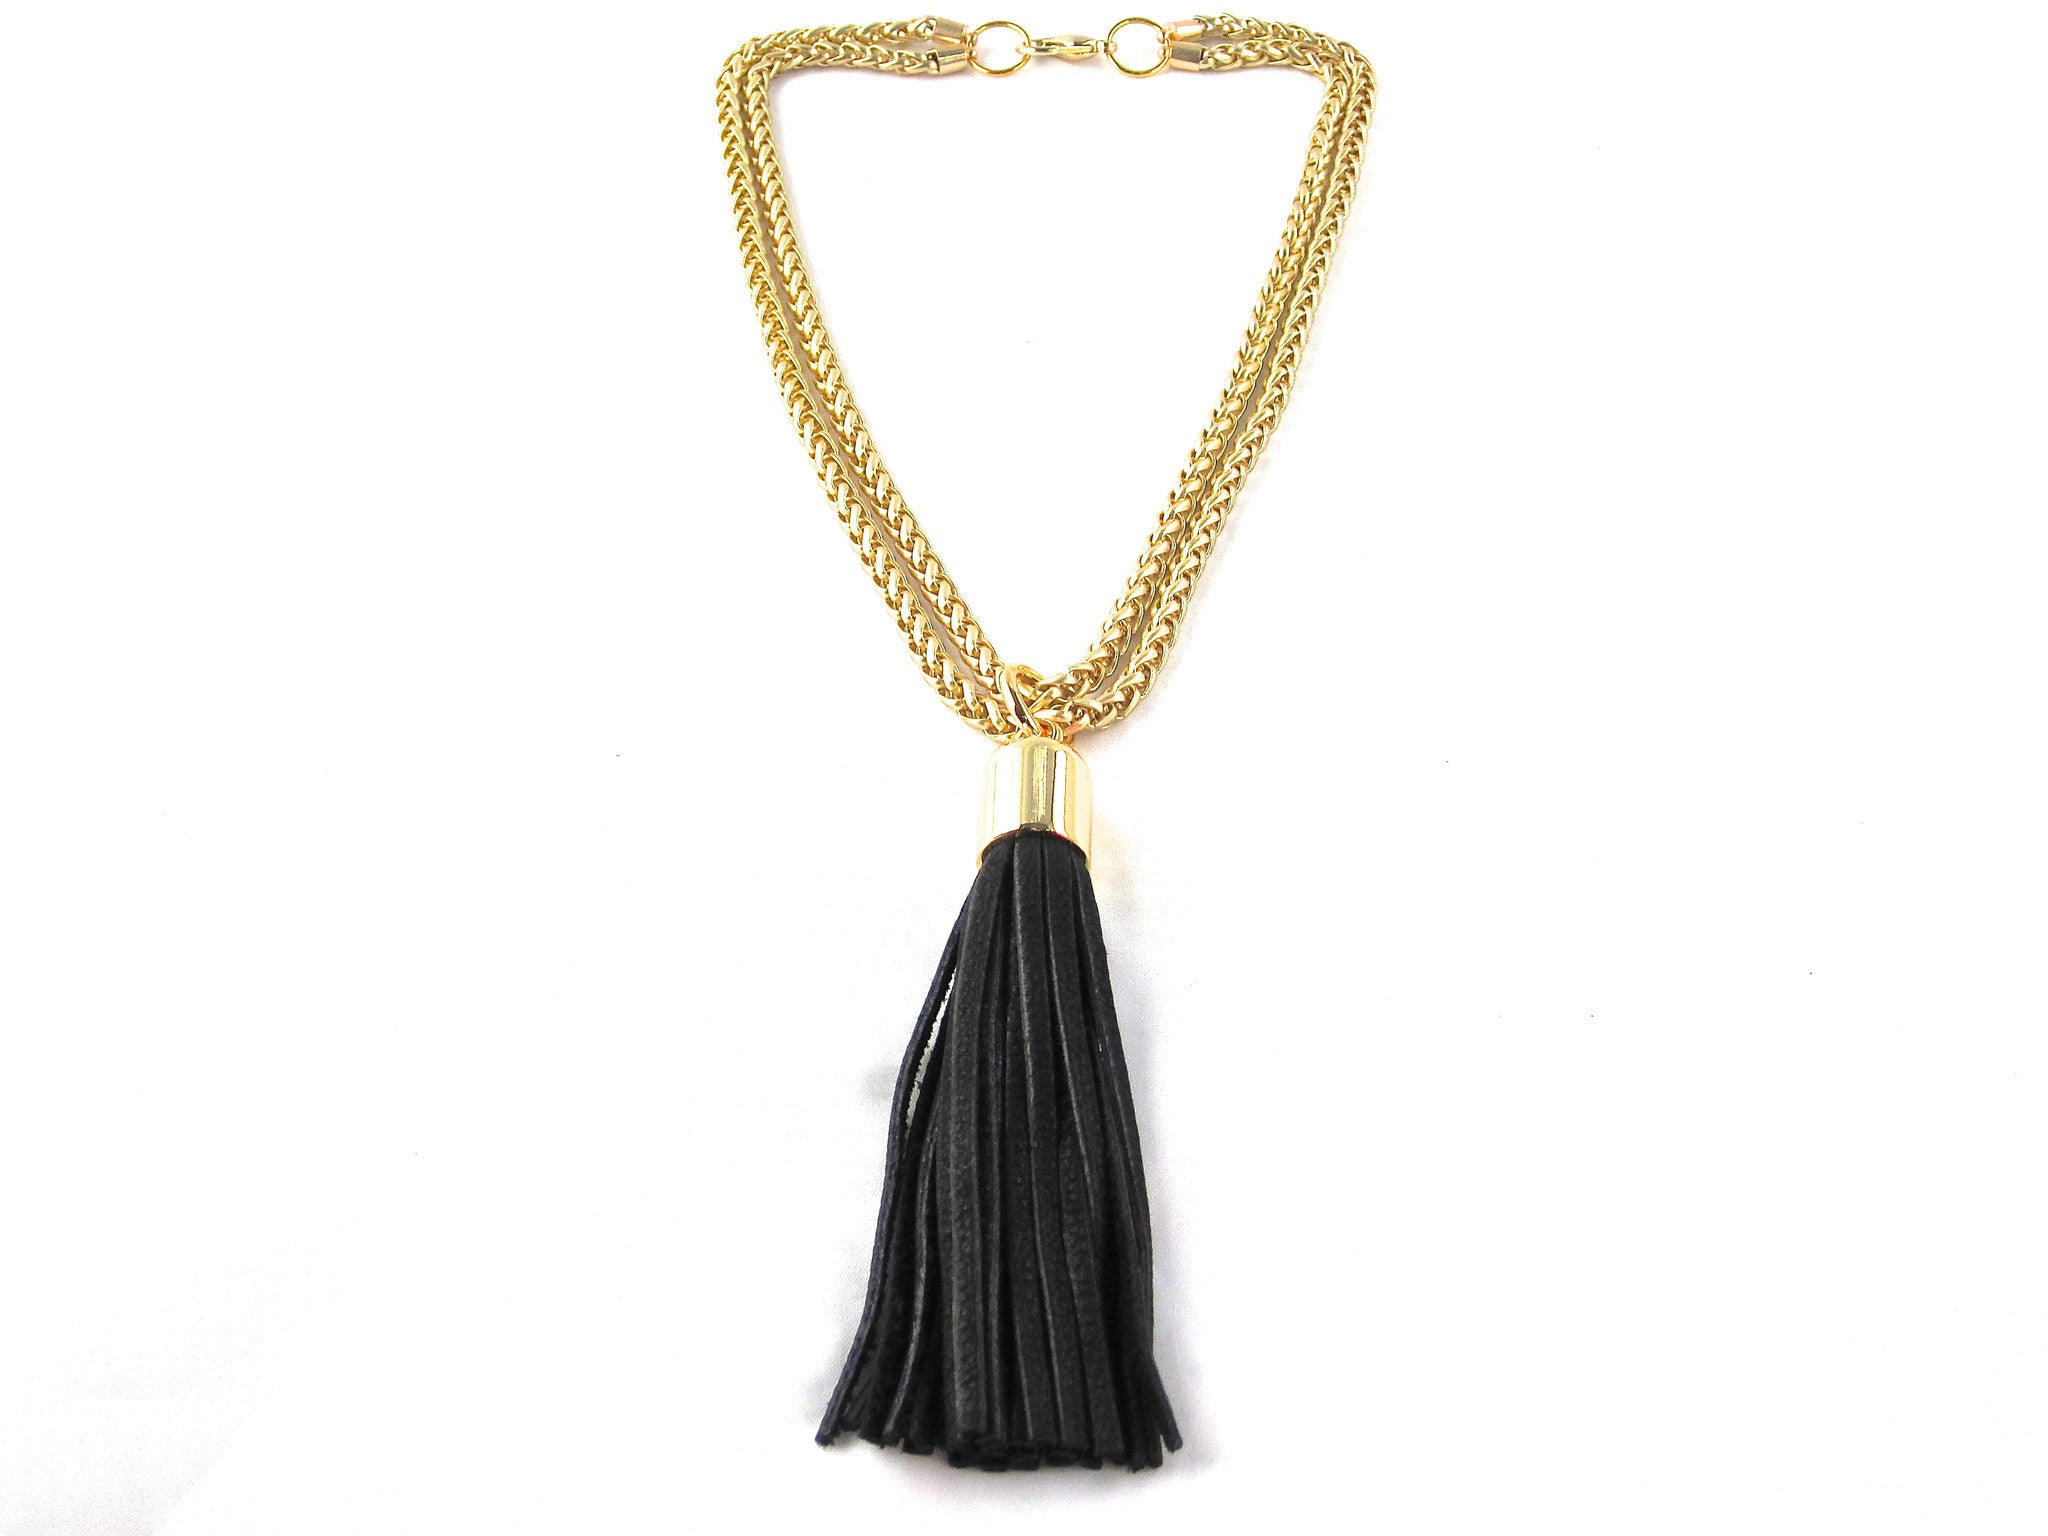 STAINLESS STEEL CHAINS AND LARGE DEERSKIN LEATHER TASSEL NECKLACE  by nyet jewelry.